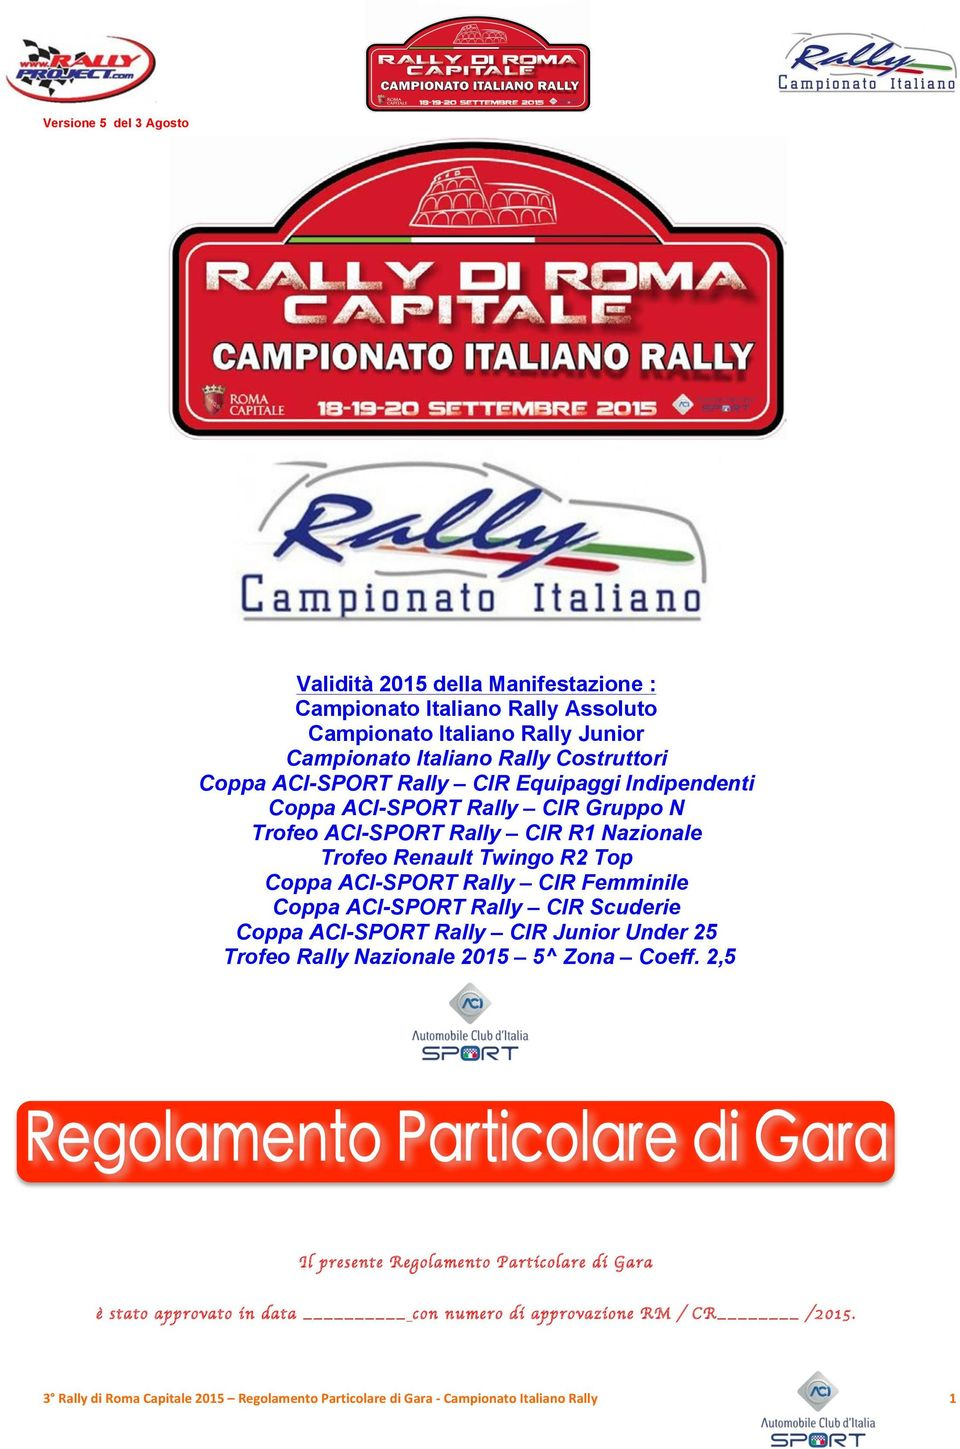 ACI-SPORT Rally CIR Fmmil Coppa ACI-SPORT Rally CIR Scudri Coppa ACI-SPORT Rally CIR Junior Undr 25 Trofo Rally Nazional 2015 5^ Zona Coff.